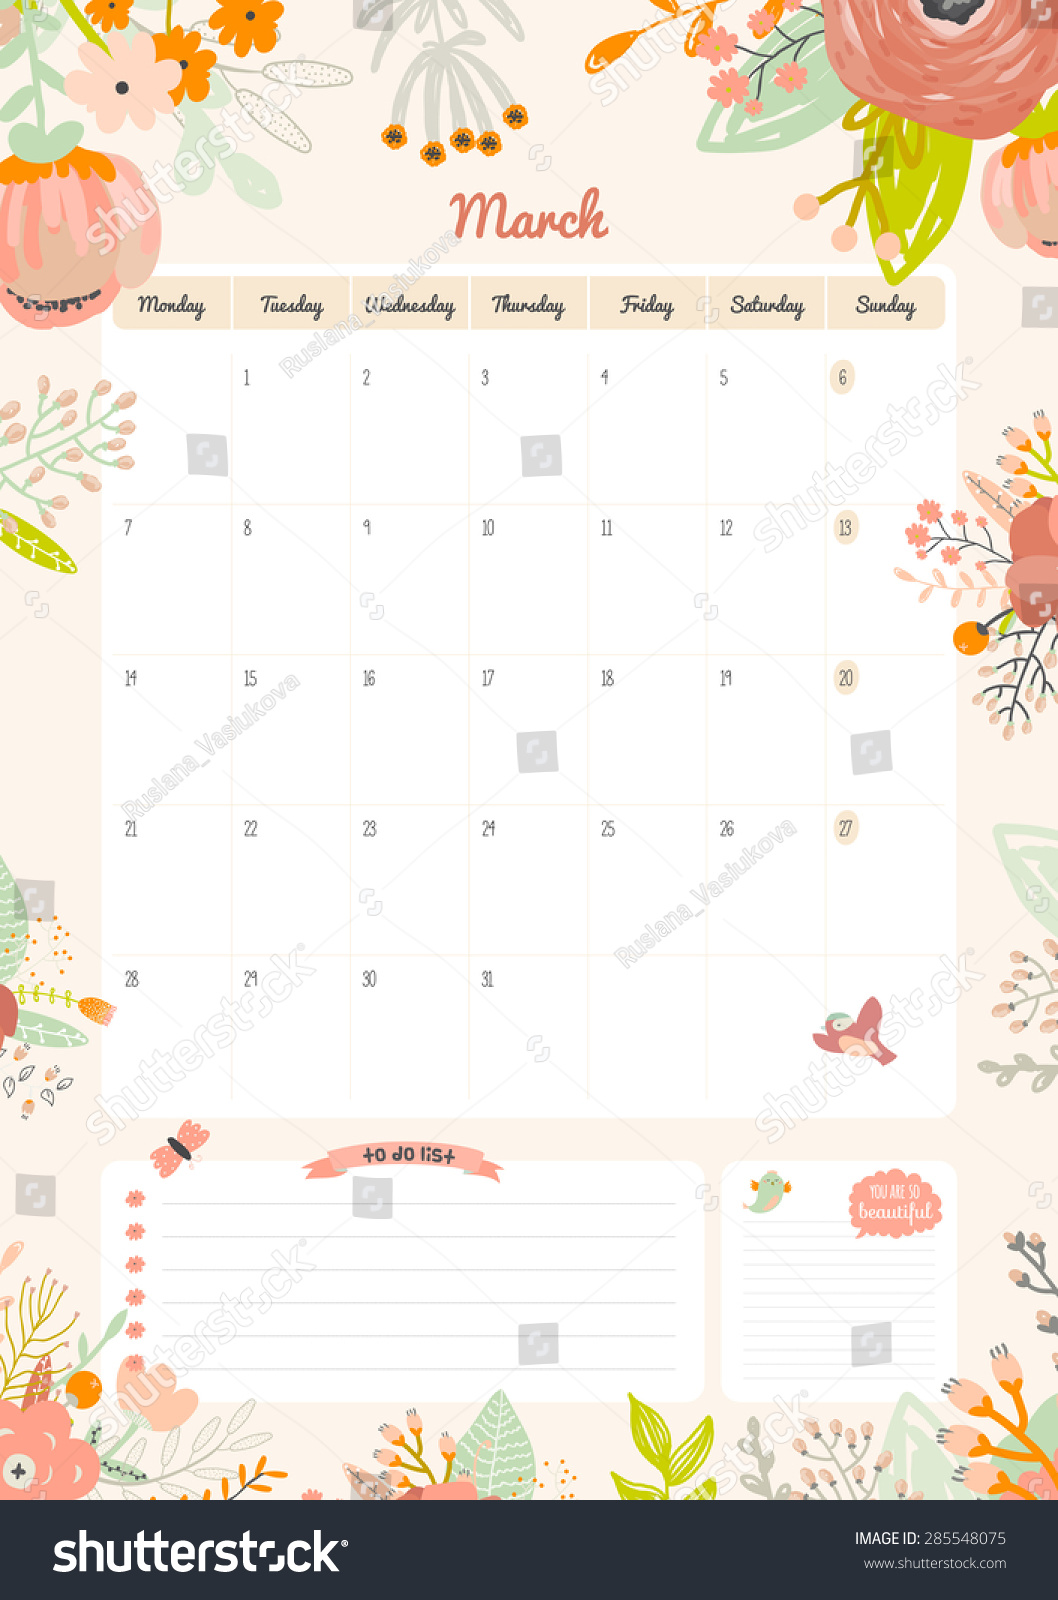 Cute Calendar Illustration : Cute calendar template beautiful diary stock vector